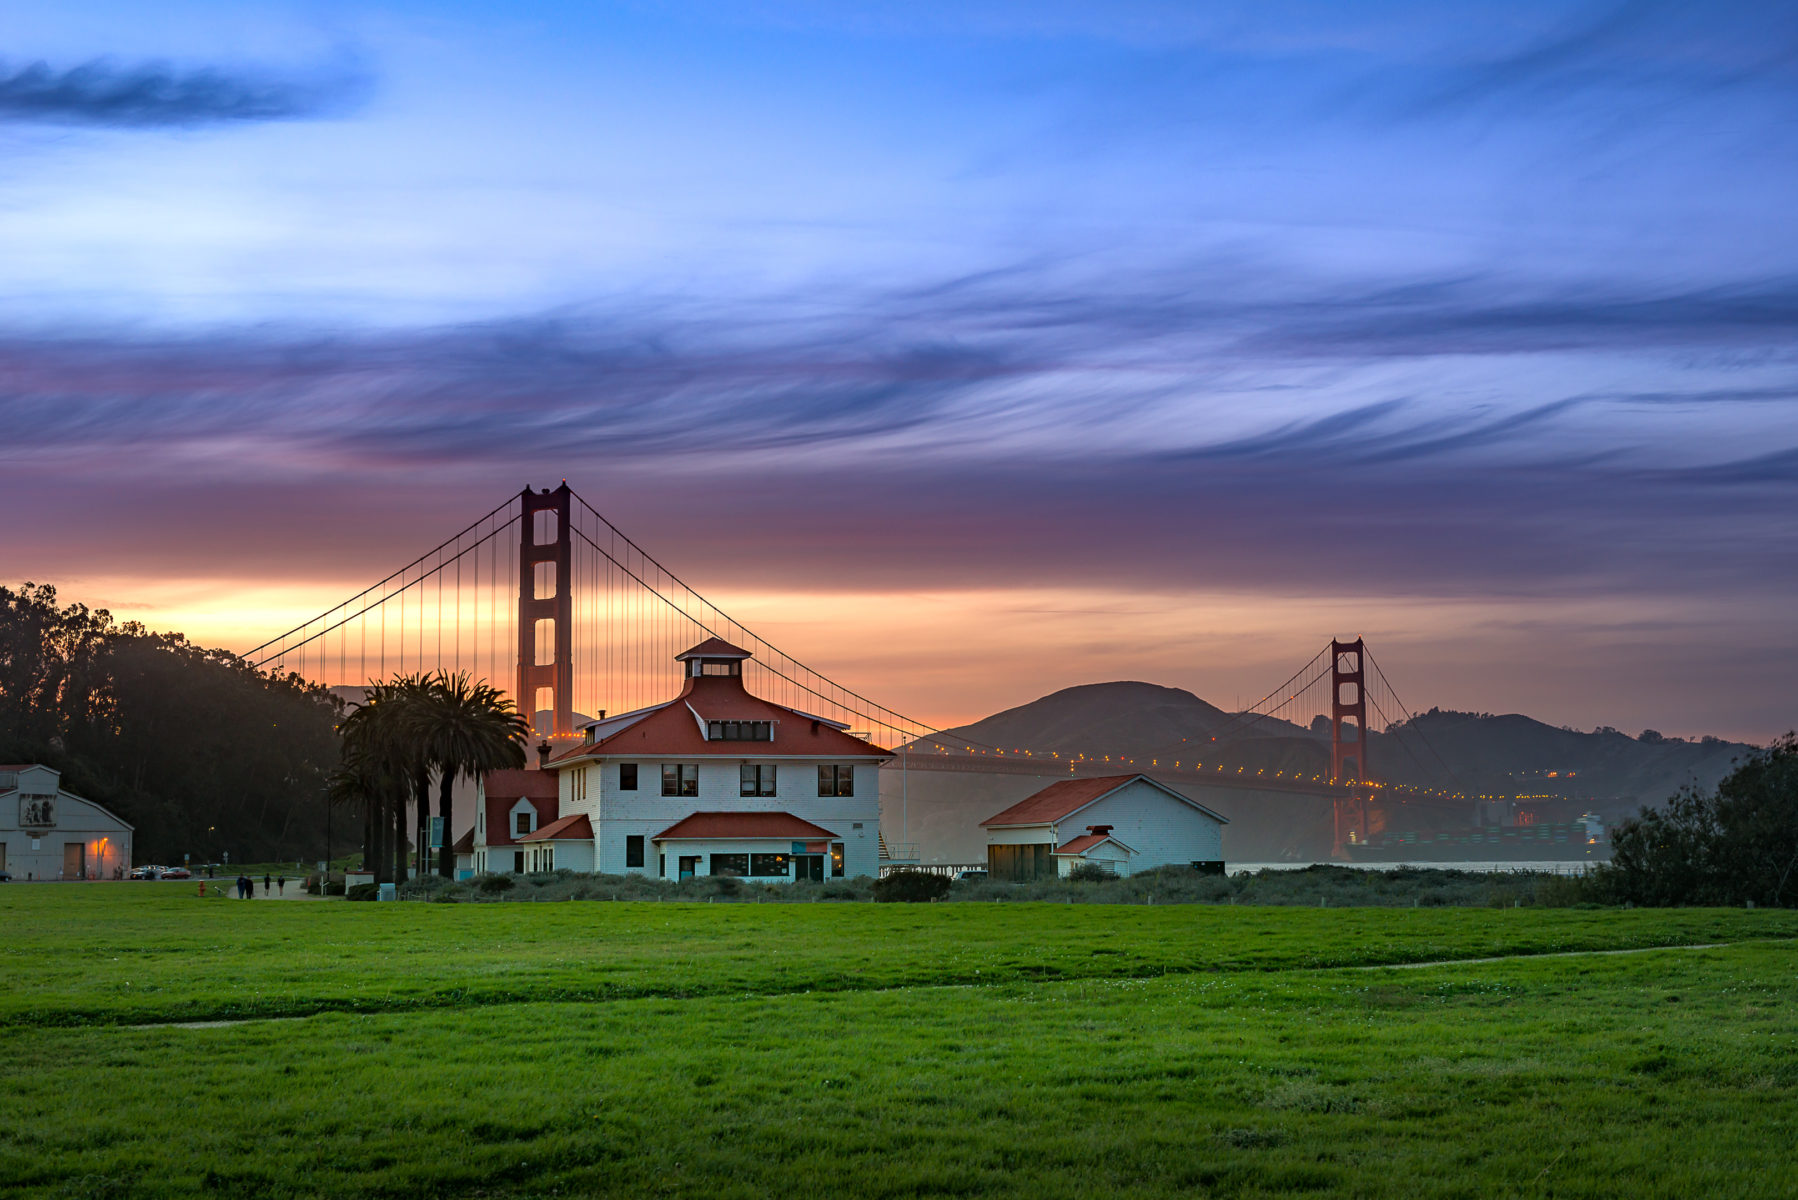 San Francisco scenic routes